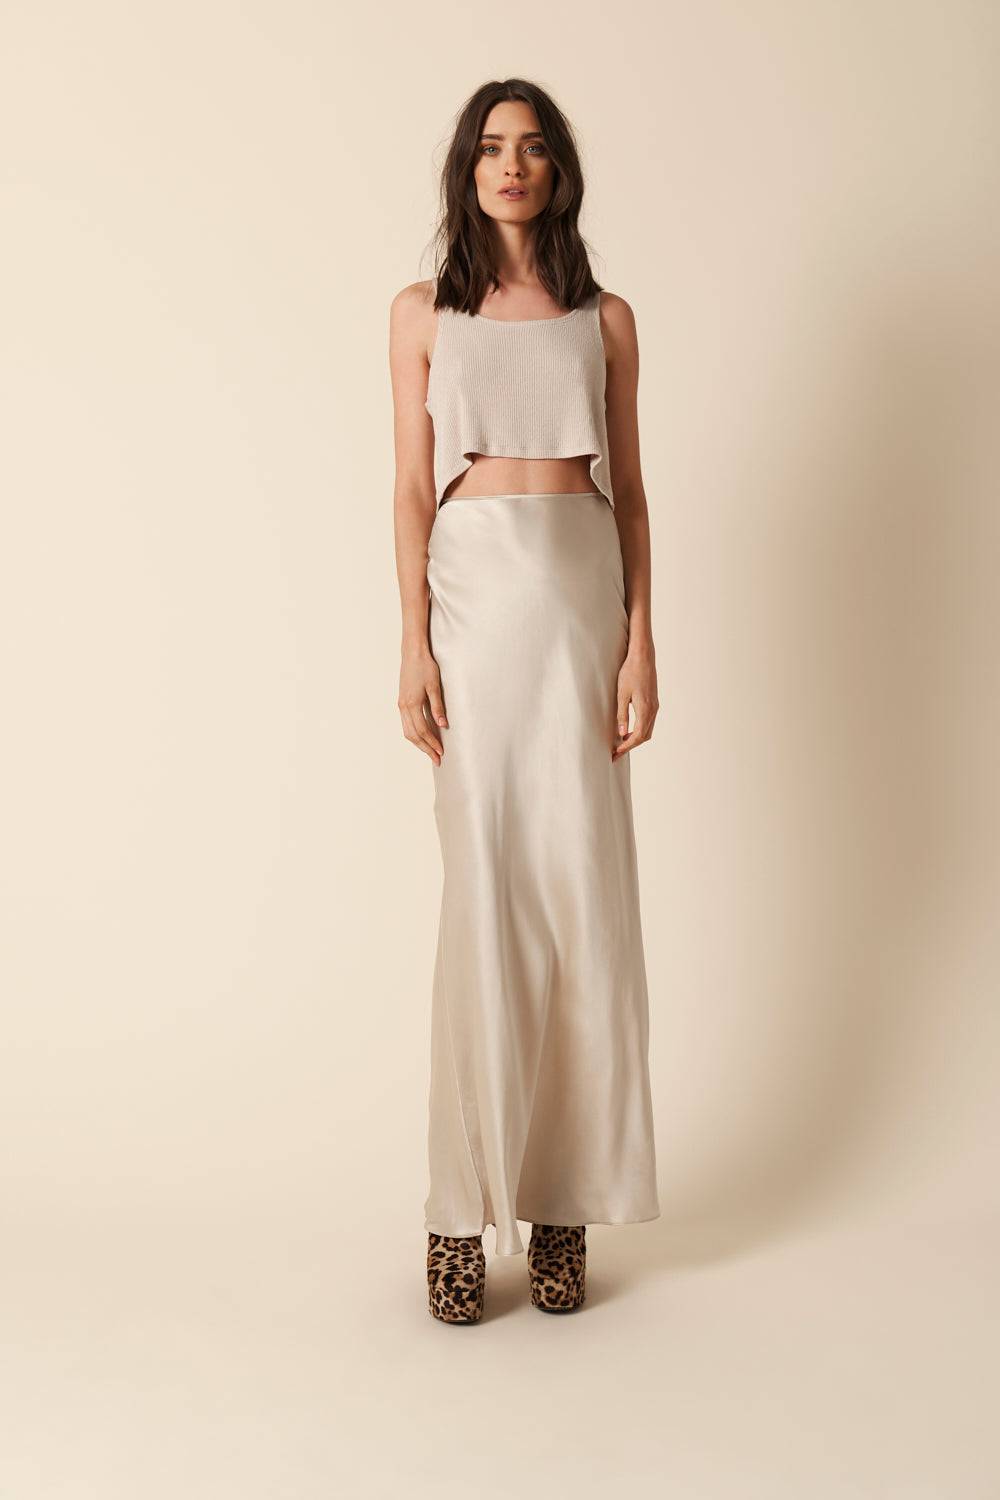 VALENTINA SILK SKIRT | BLUSH